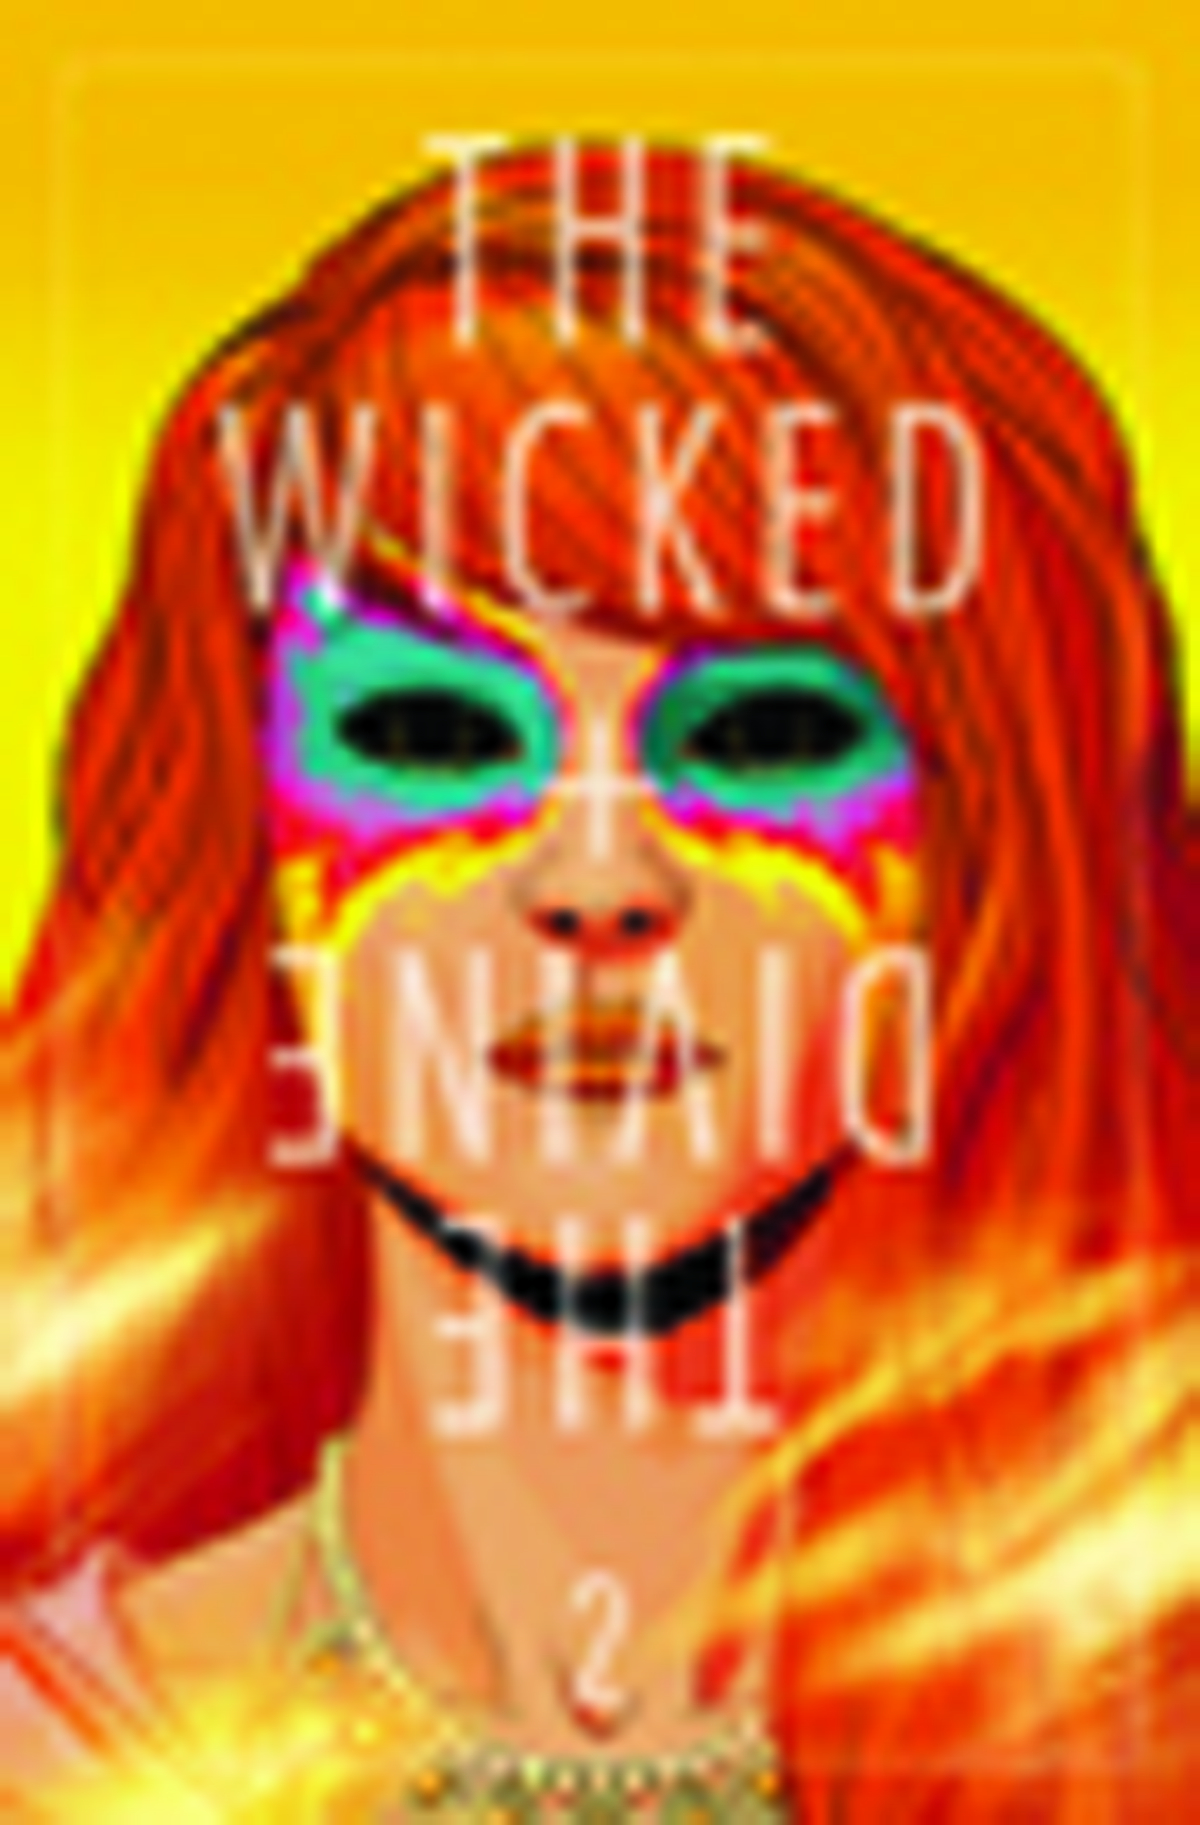 WICKED & DIVINE #2